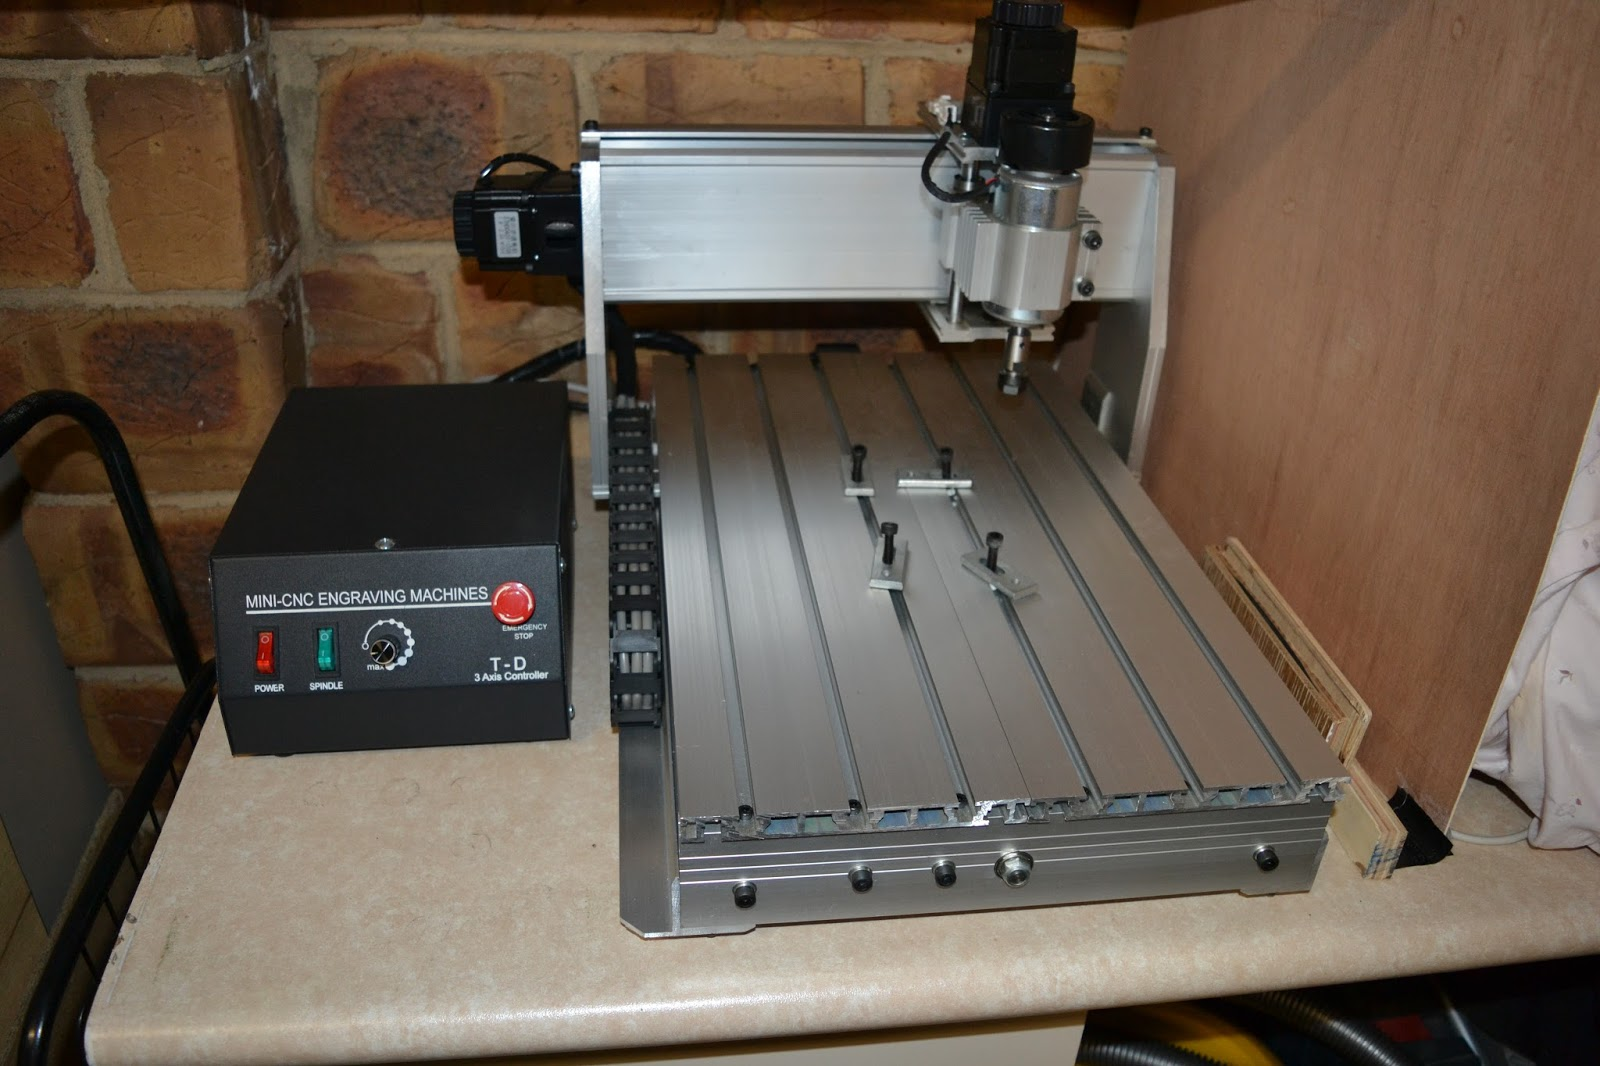 Billys Projects 3020t Cnc Engraving Machine Diy Mill I Bought A Light Milling Off Ebay To Pcbs And Other Parts In Future Id Have Liked Try Building My Own But That Will